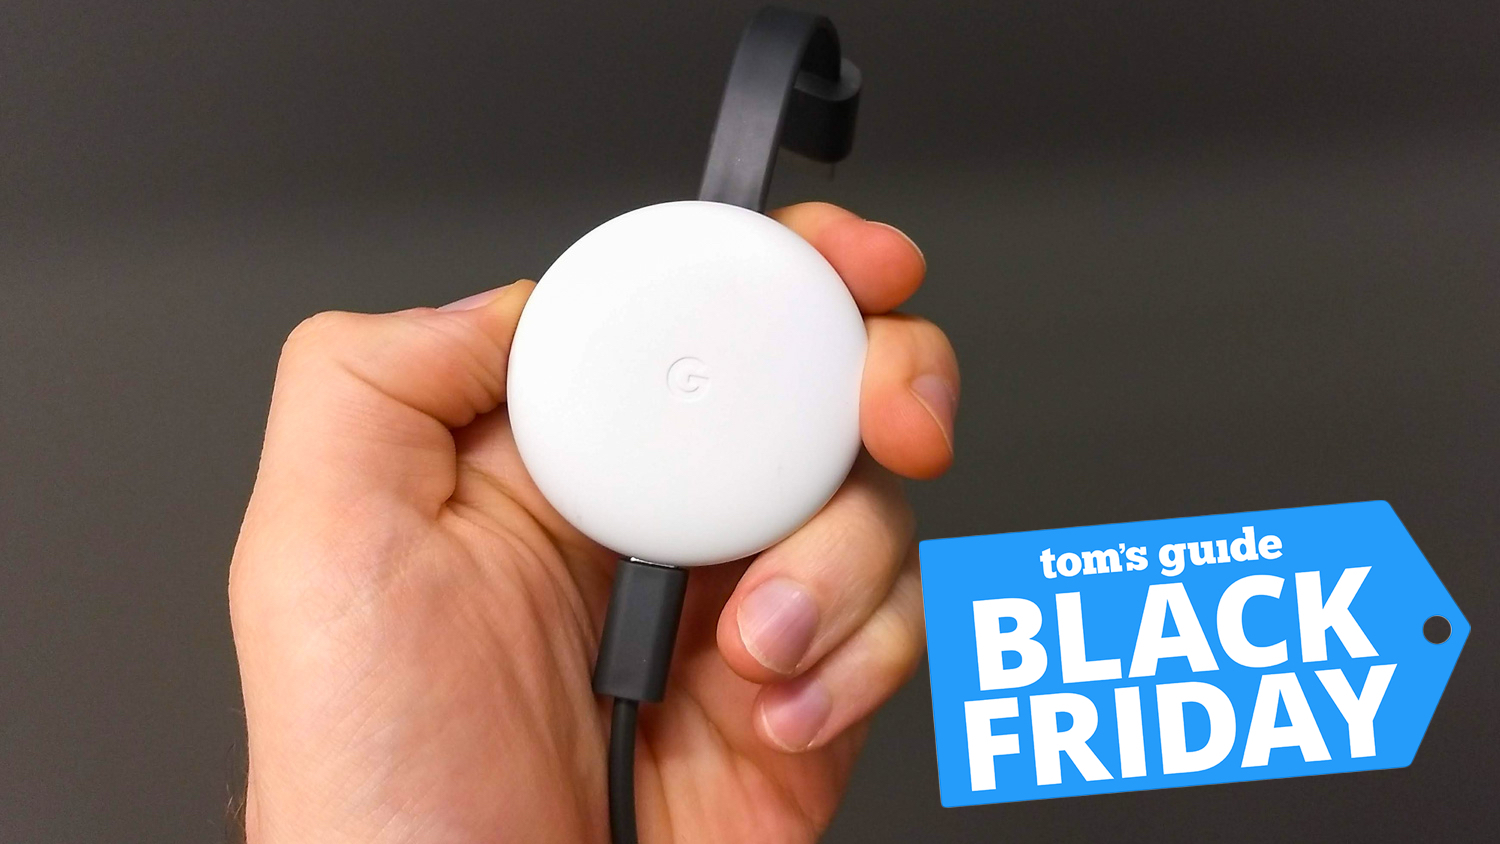 Chromecast Black Friday Deal Look What Just Hit 18 Tom S Guide